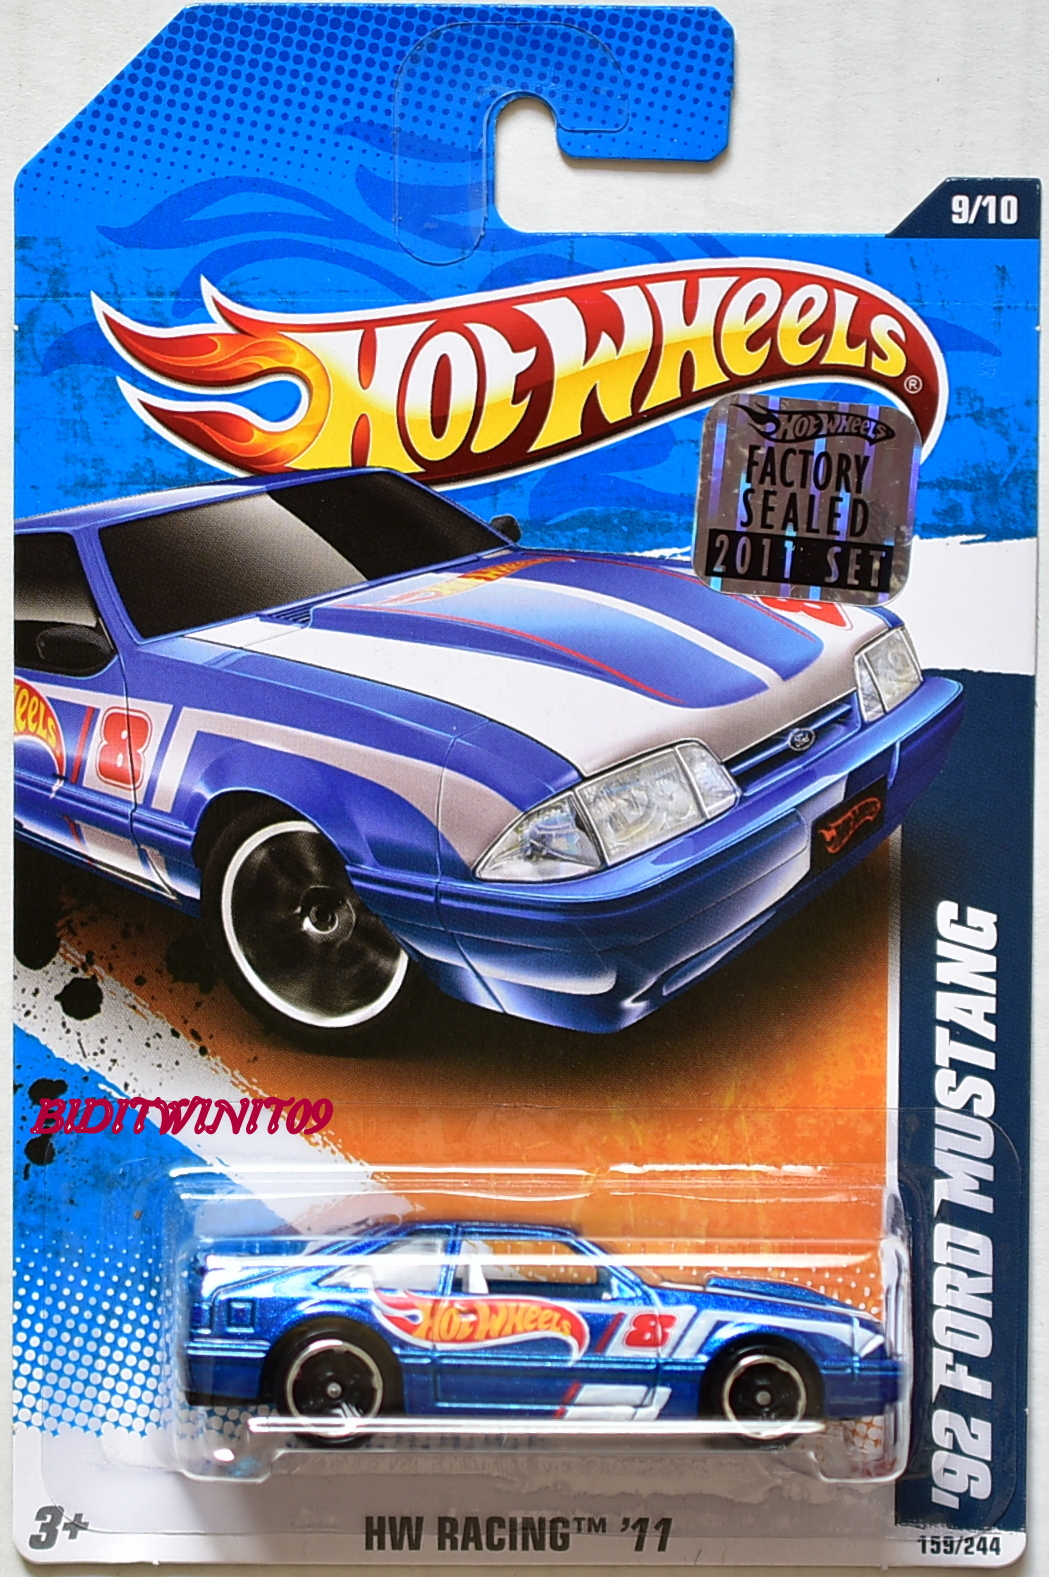 HOT WHEELS 2011 HW RACING '92 FORD MUSTANG #9/10 BLUE FACTORY SEALED